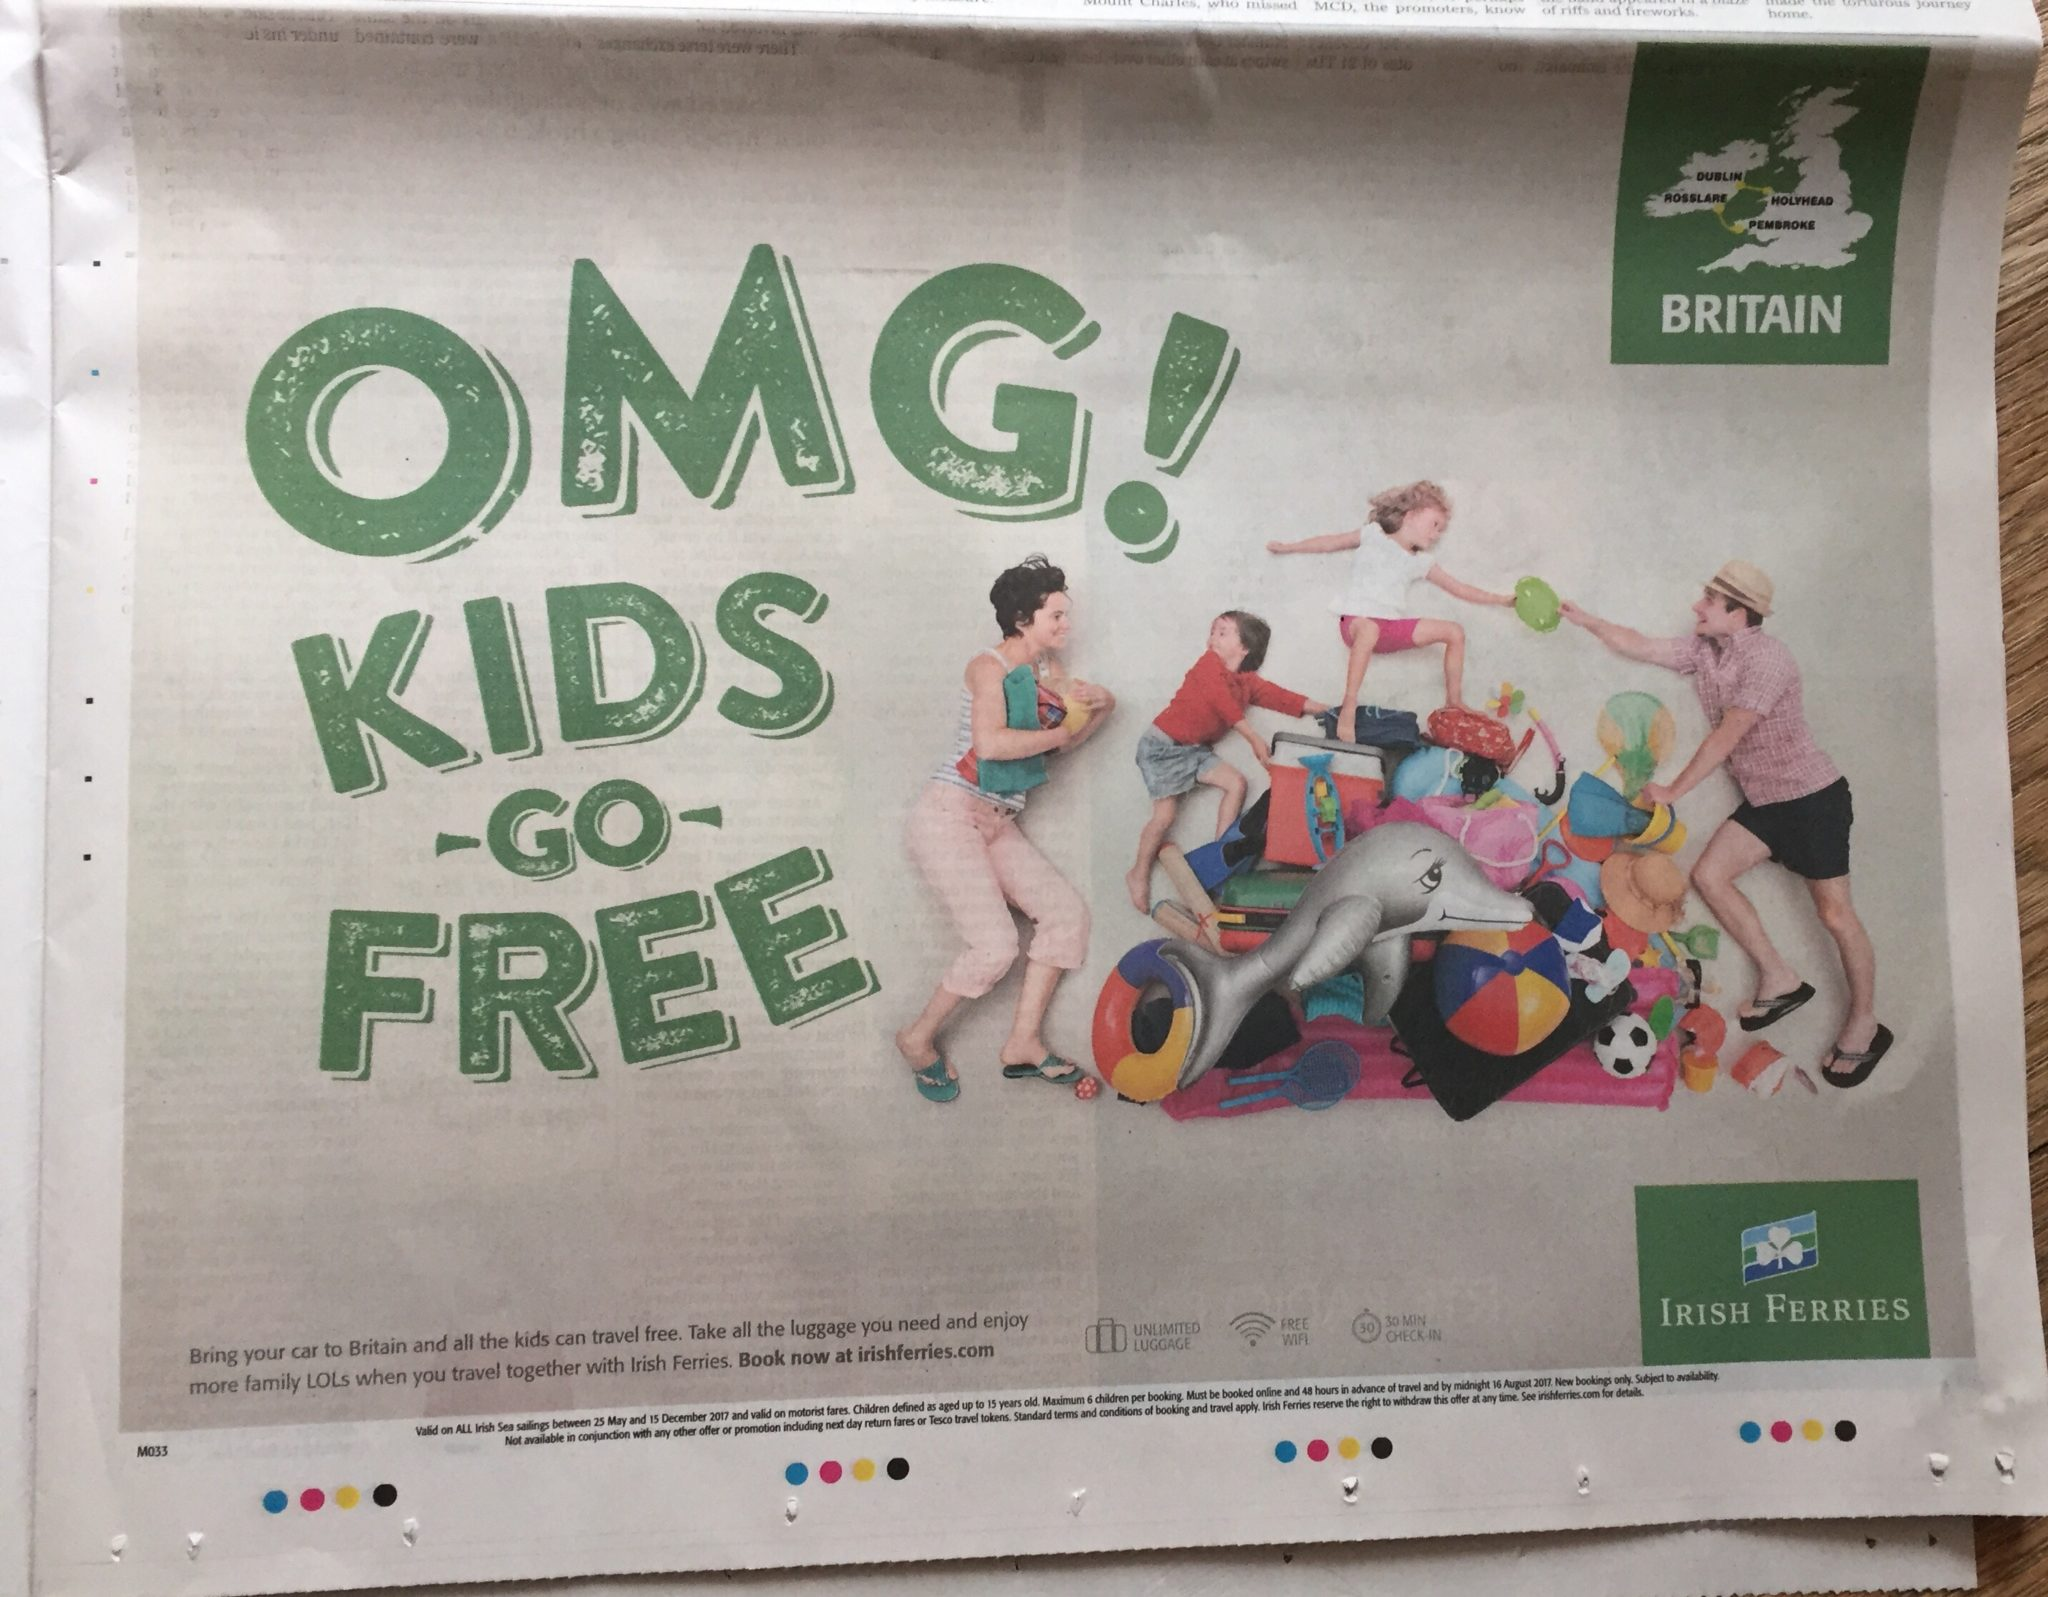 Irish ferries – OMG kids go free